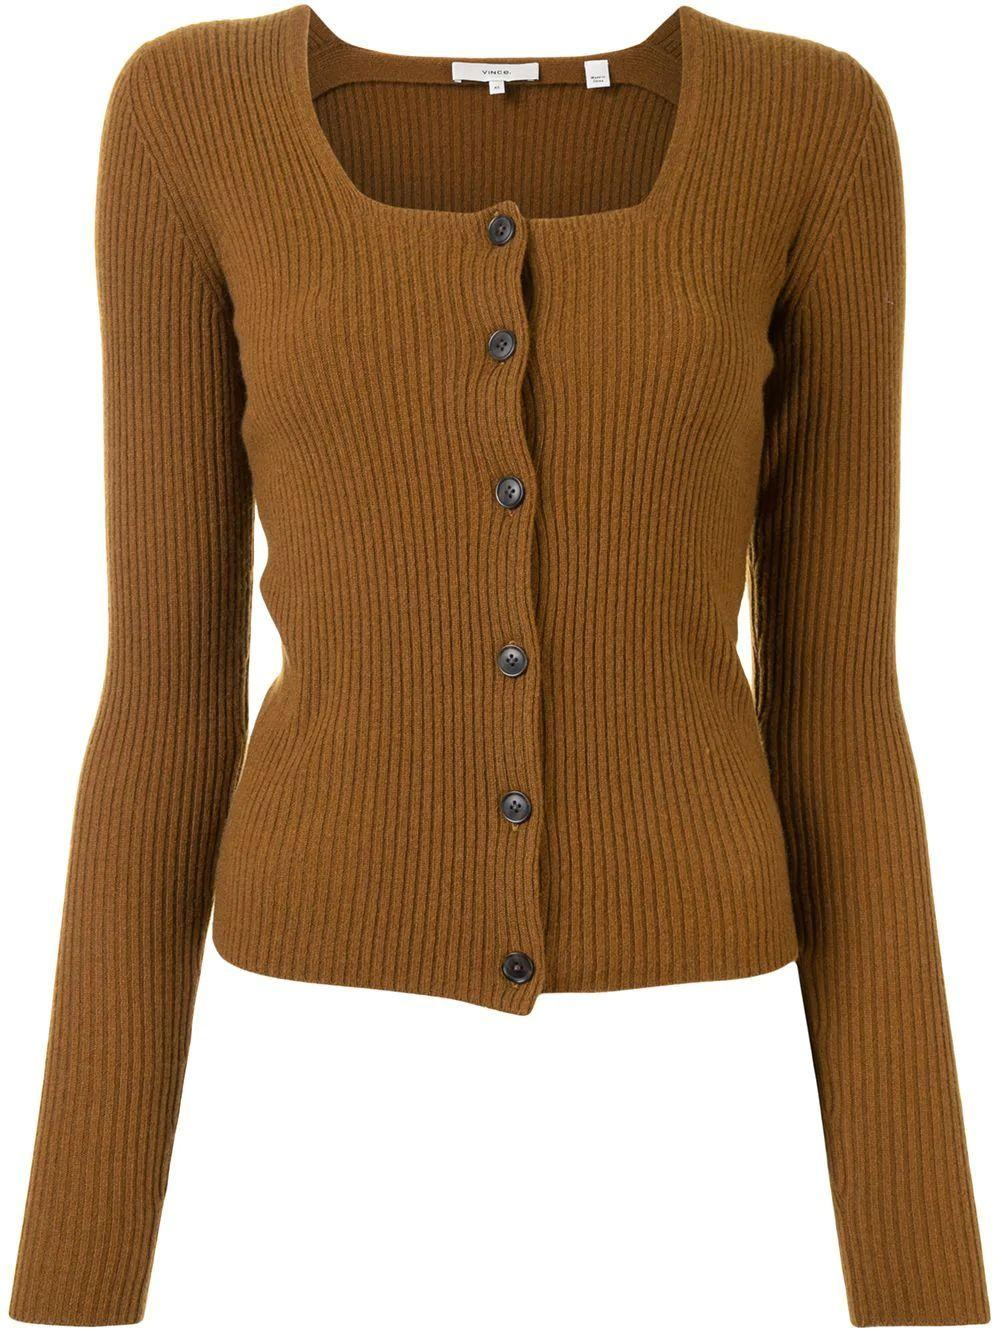 Square Neck Cardigan